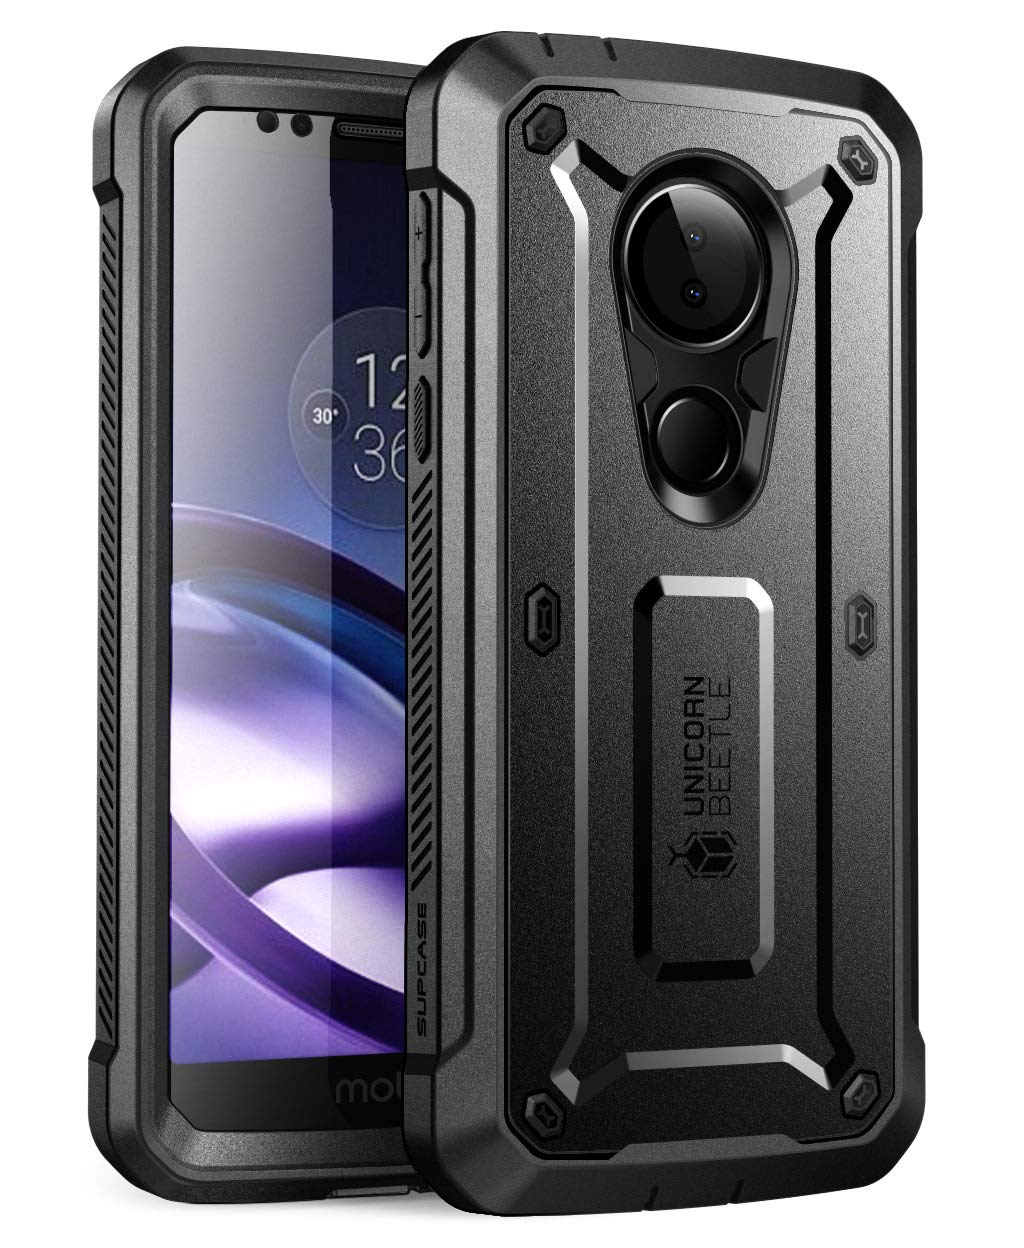 Amazon.com: Moto G6 Play Case, Moto E5 Case, Moto G6 Forge ...